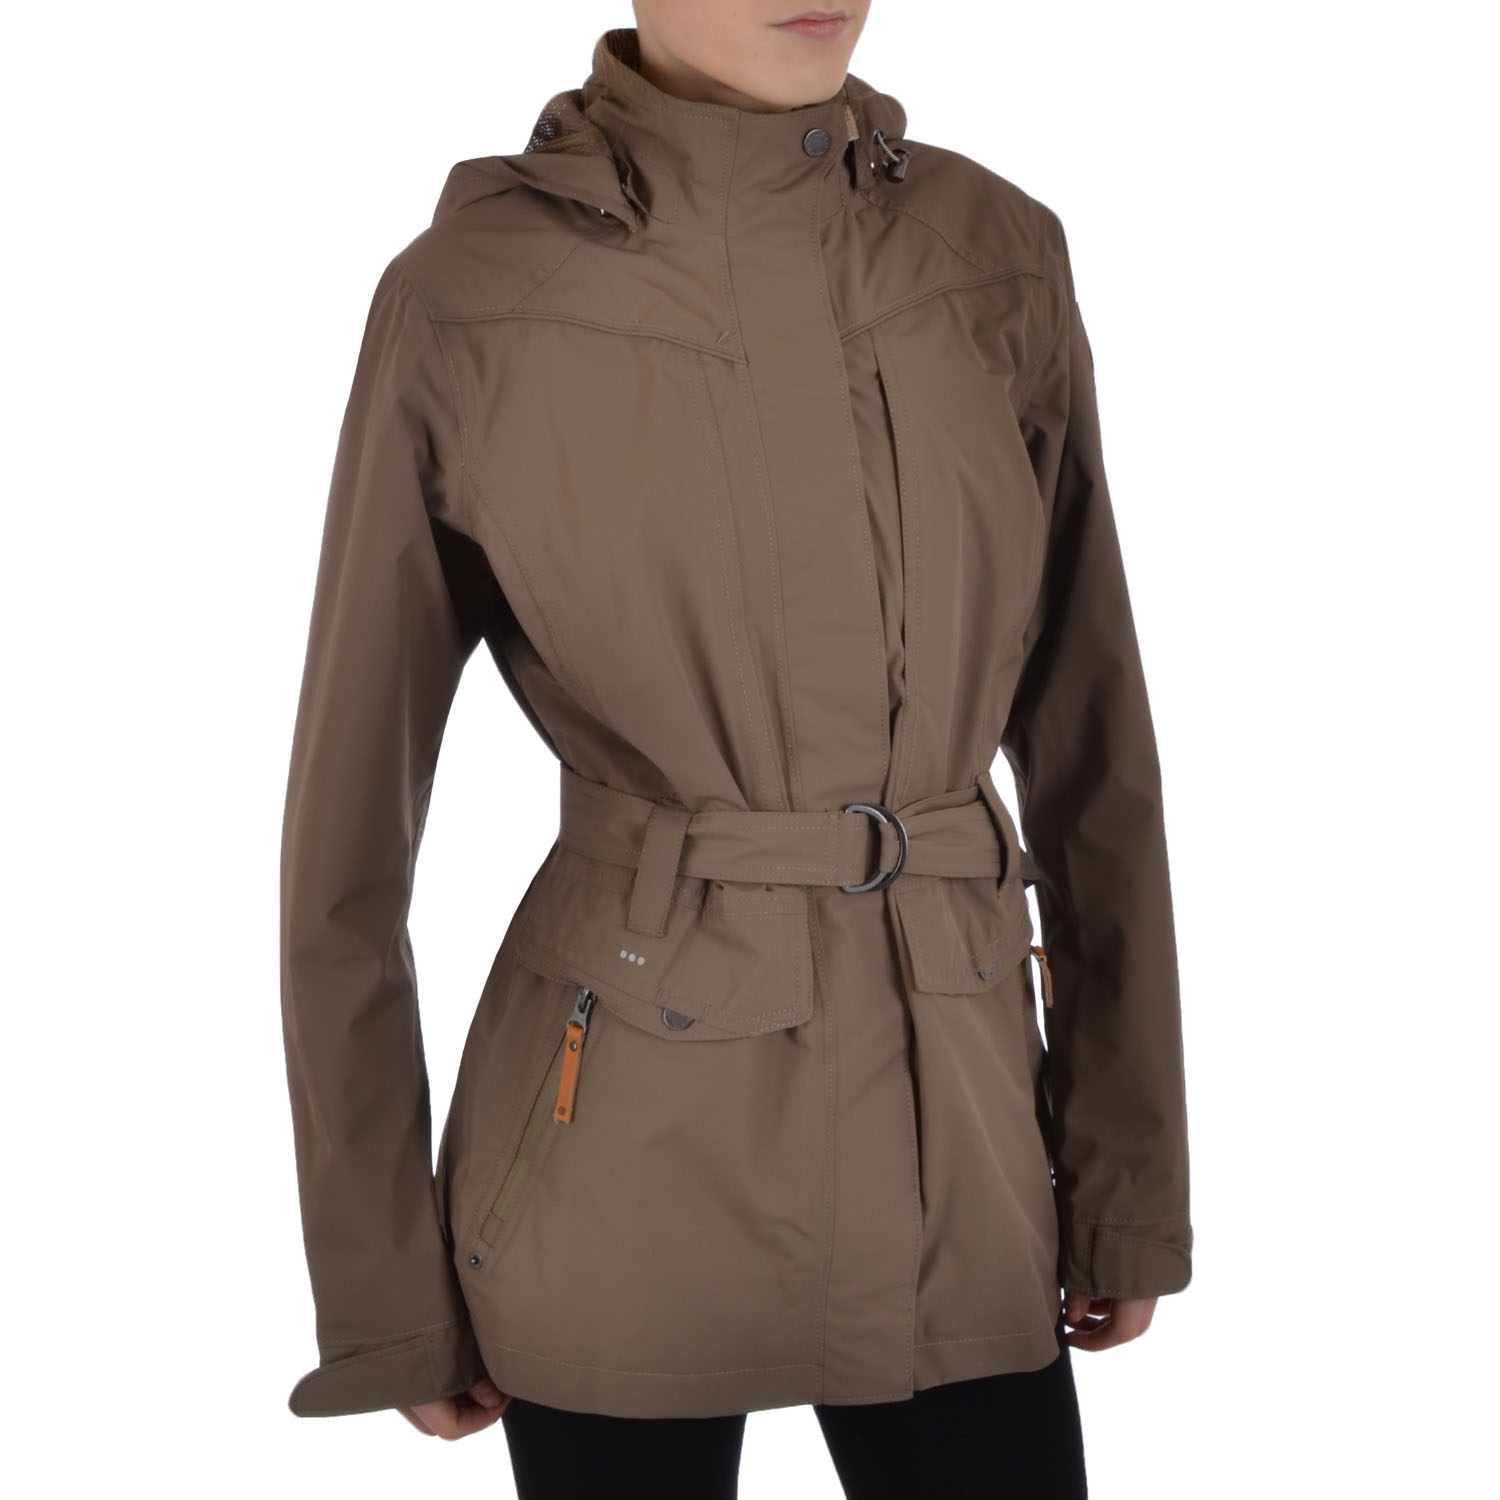 Foul weather can't get through the performance coats, jackets, and layering pieces in our collection of women's outerwear. Zip up, snap shut, or pull on our meticulously designed outerwear before heading out in any season.